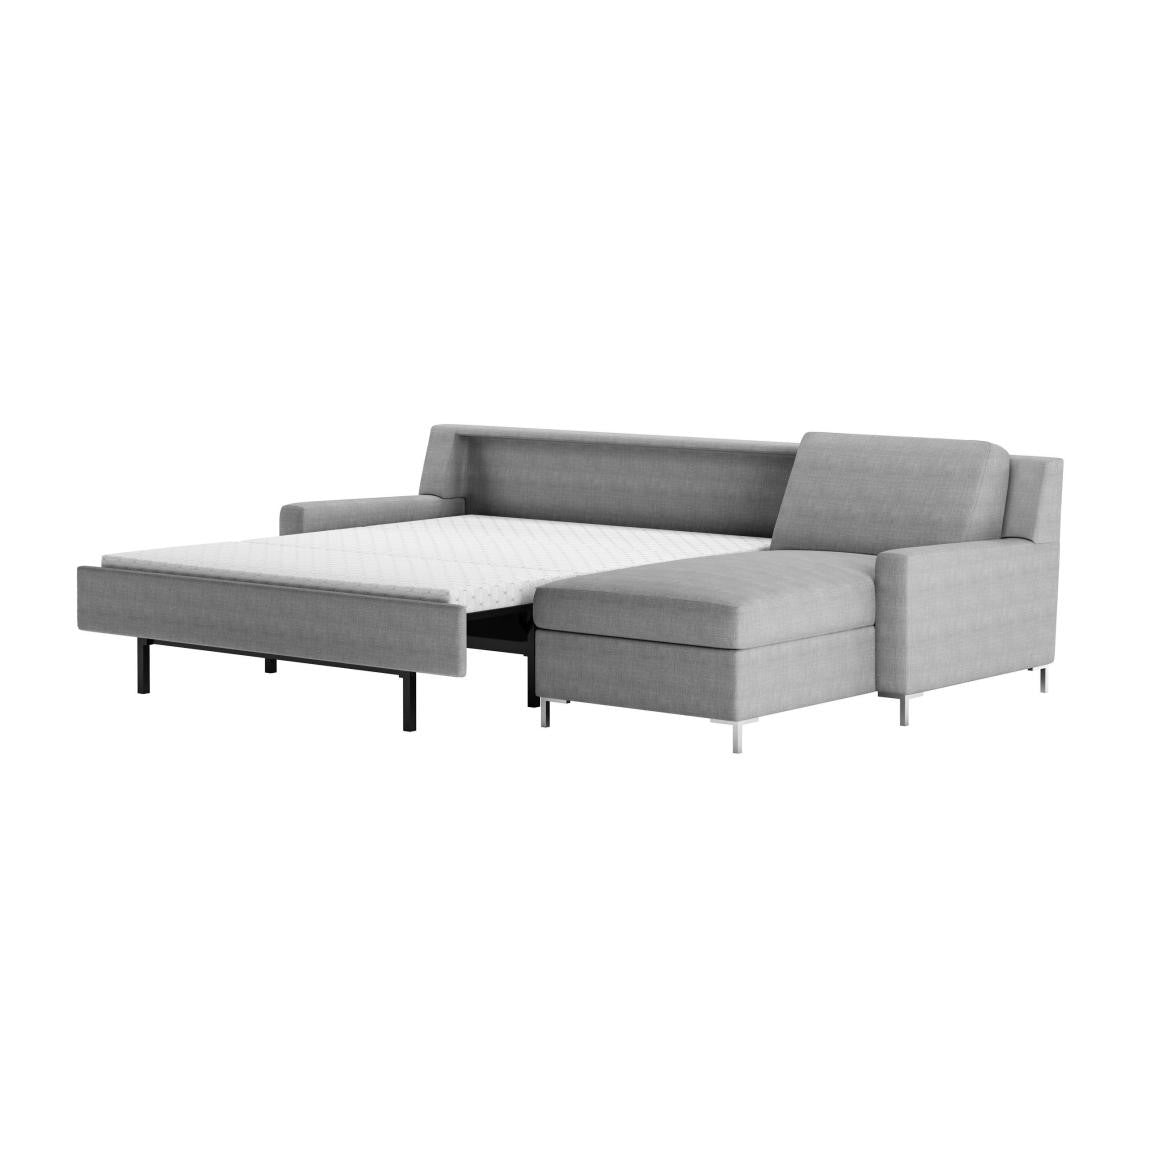 Bryson Sleeper Sofa